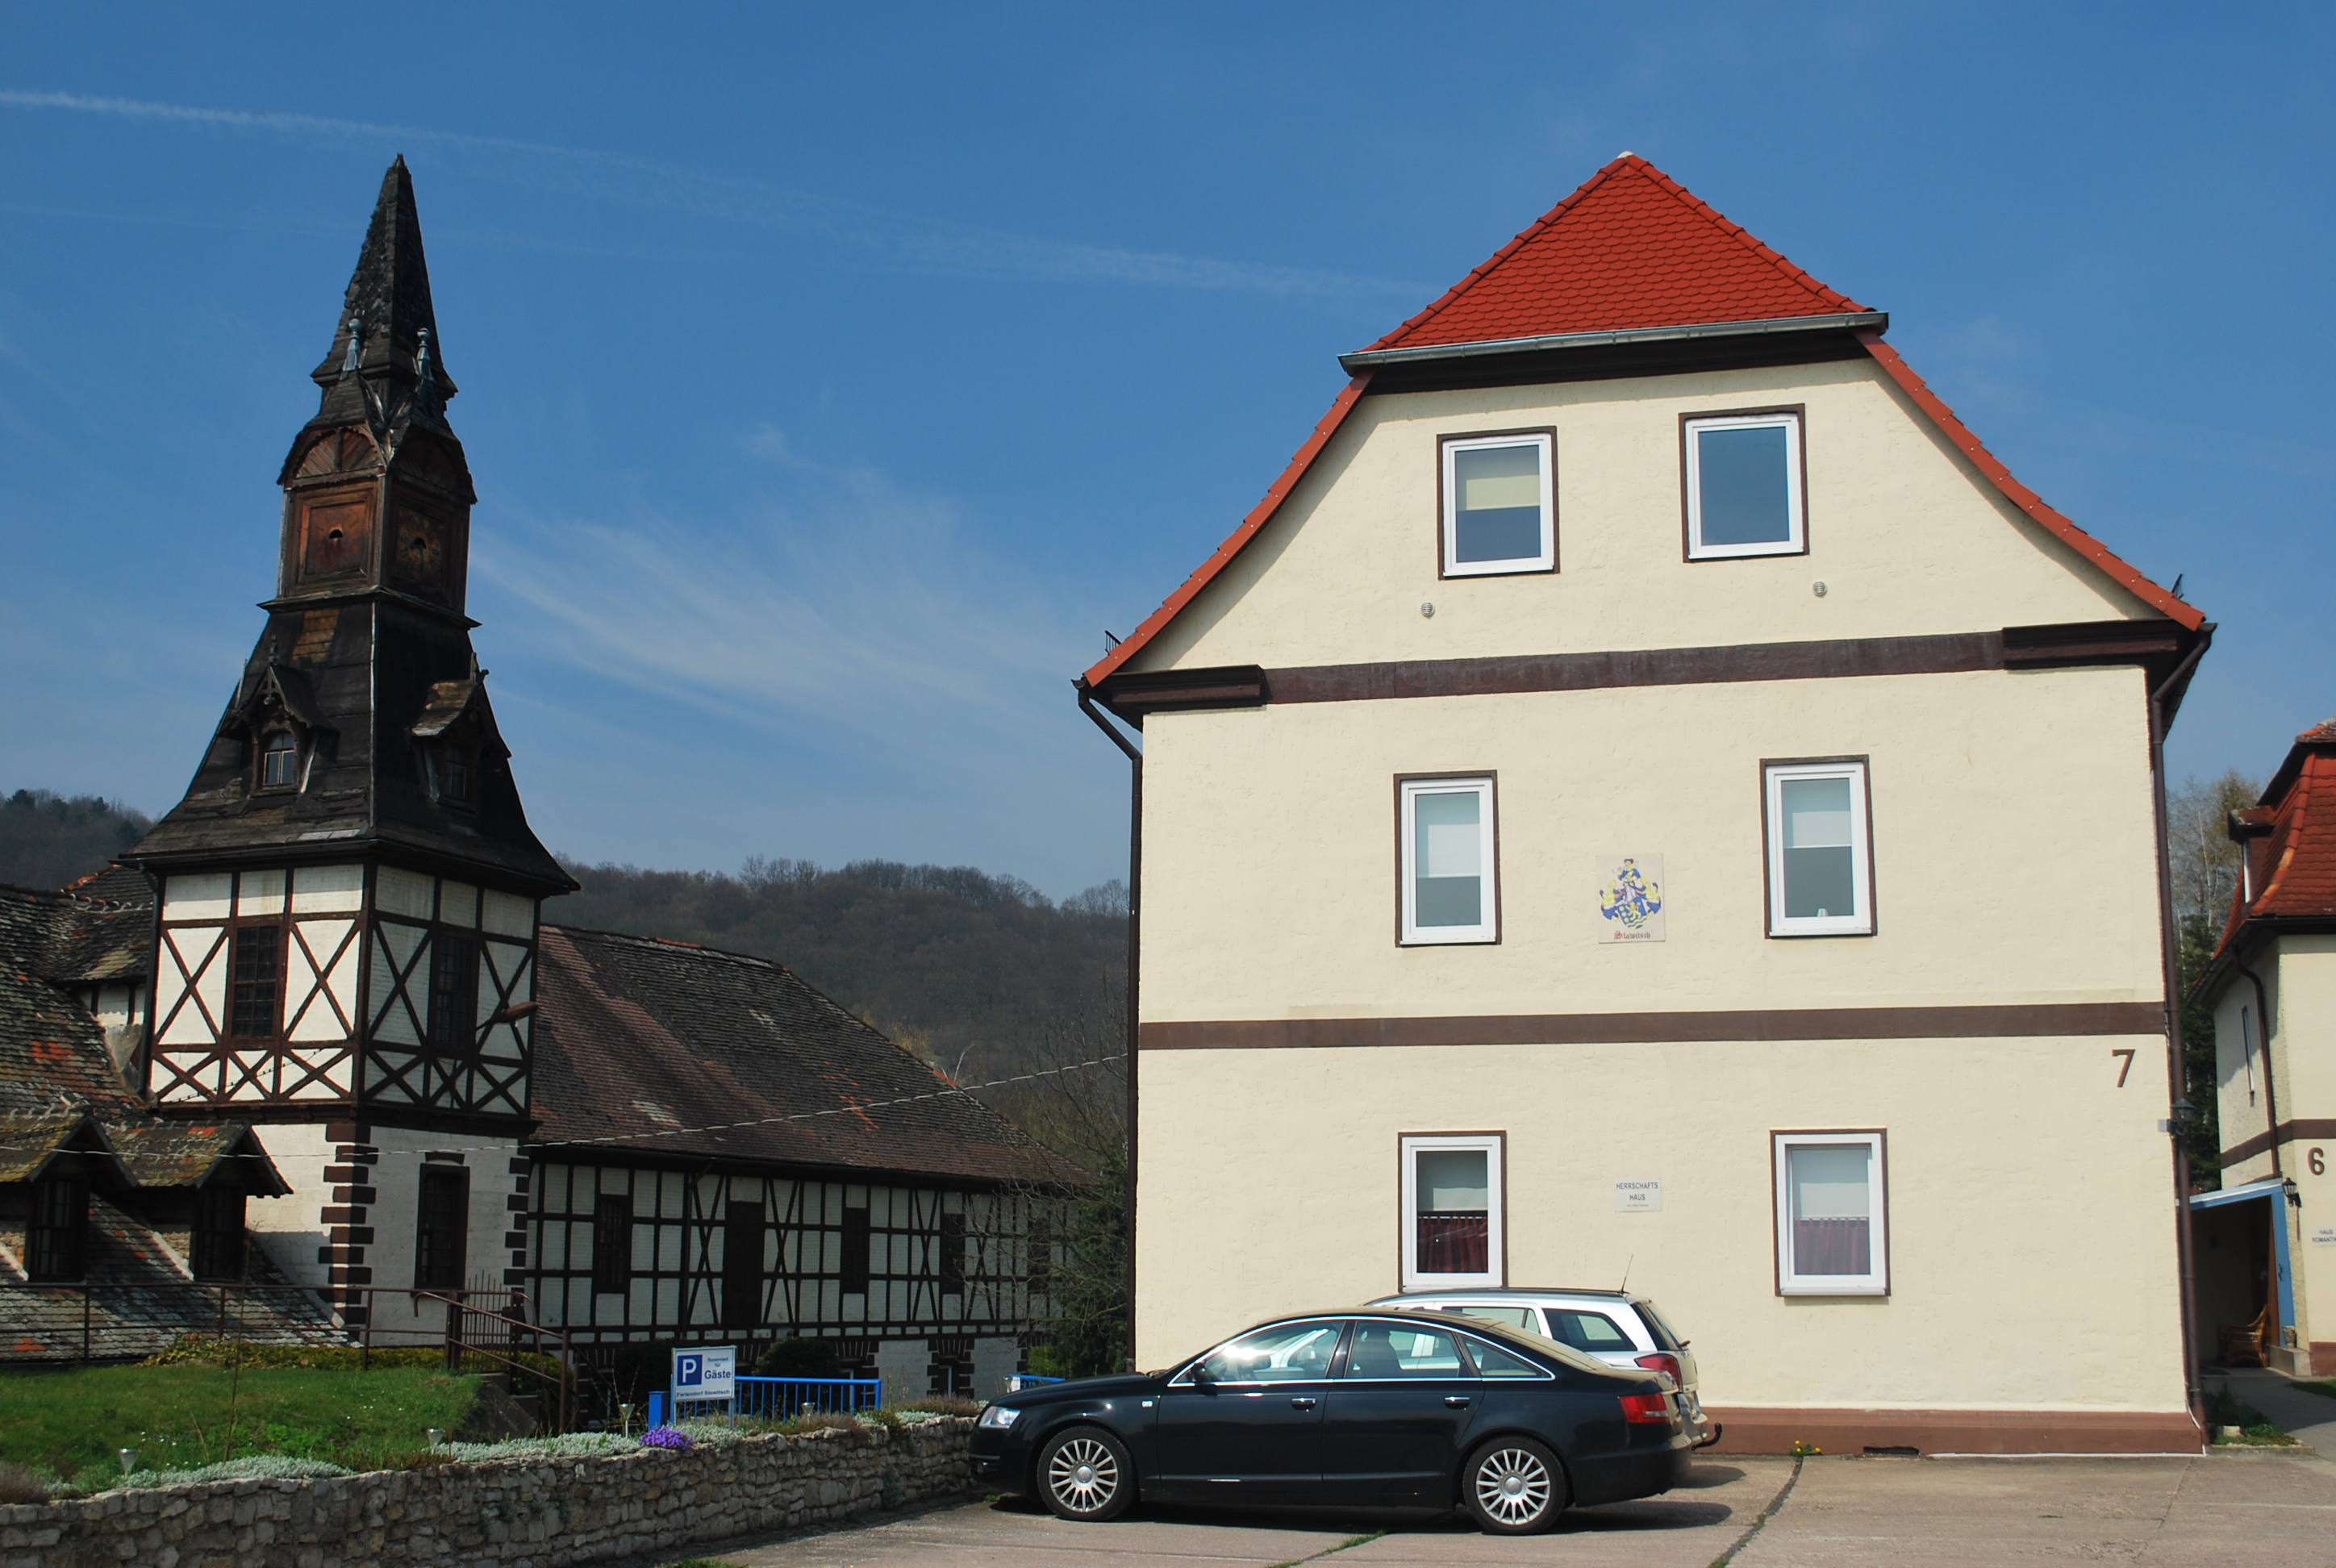 Holiday apartment Seepferdchen (2 Pers- 20m2) (421799), Bad Sulza, Weimar Country, Thuringia, Germany, picture 14